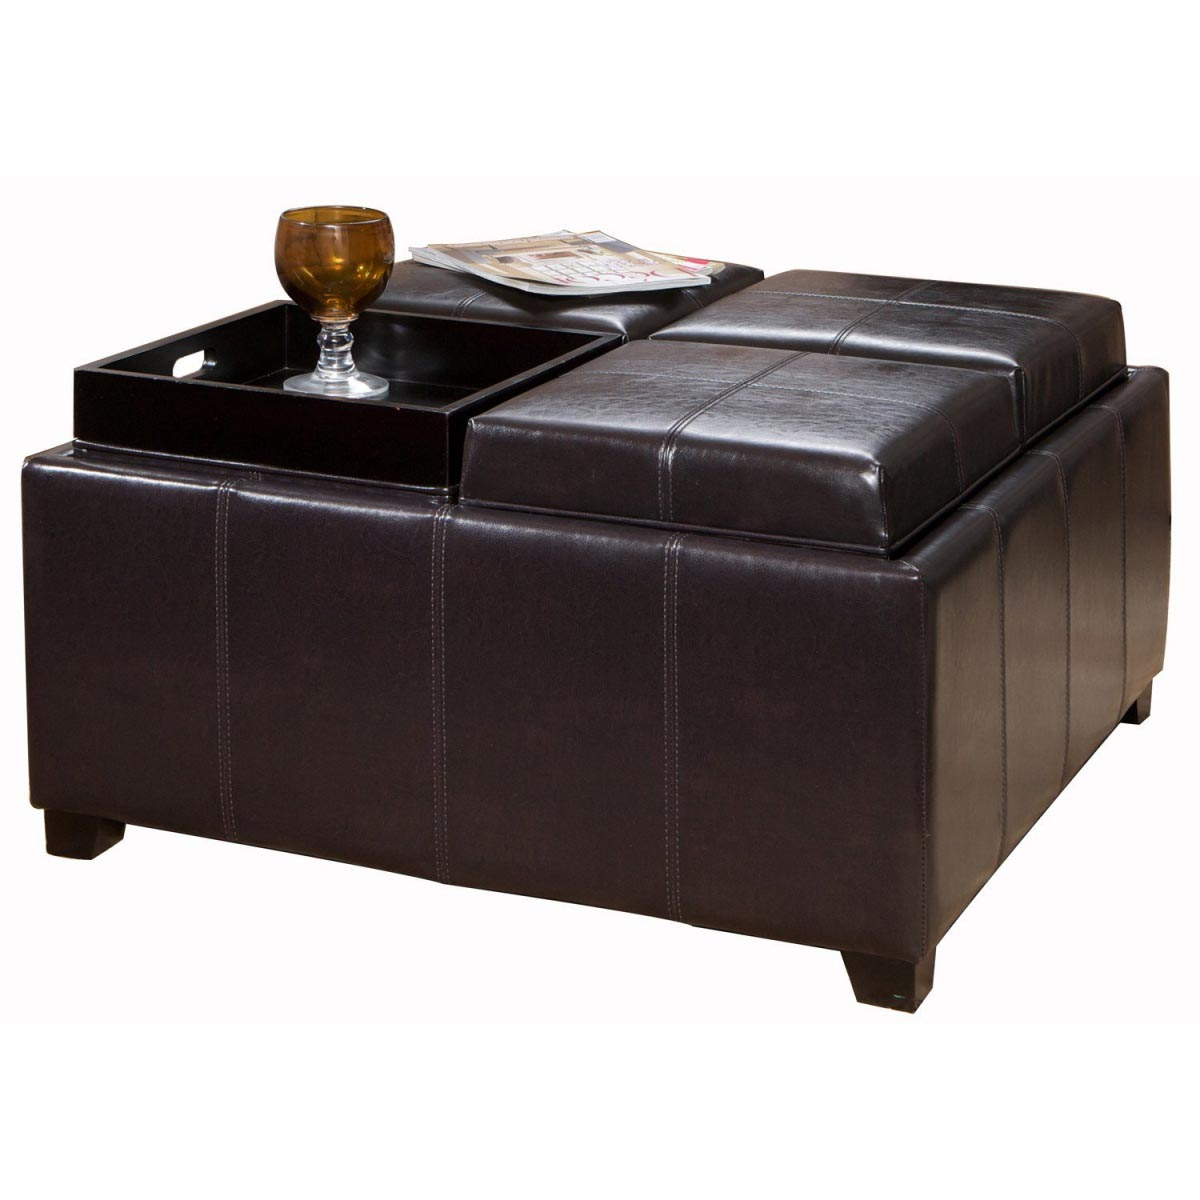 Coffee table leather ottoman coffee table design ideas Ottoman coffee table trays